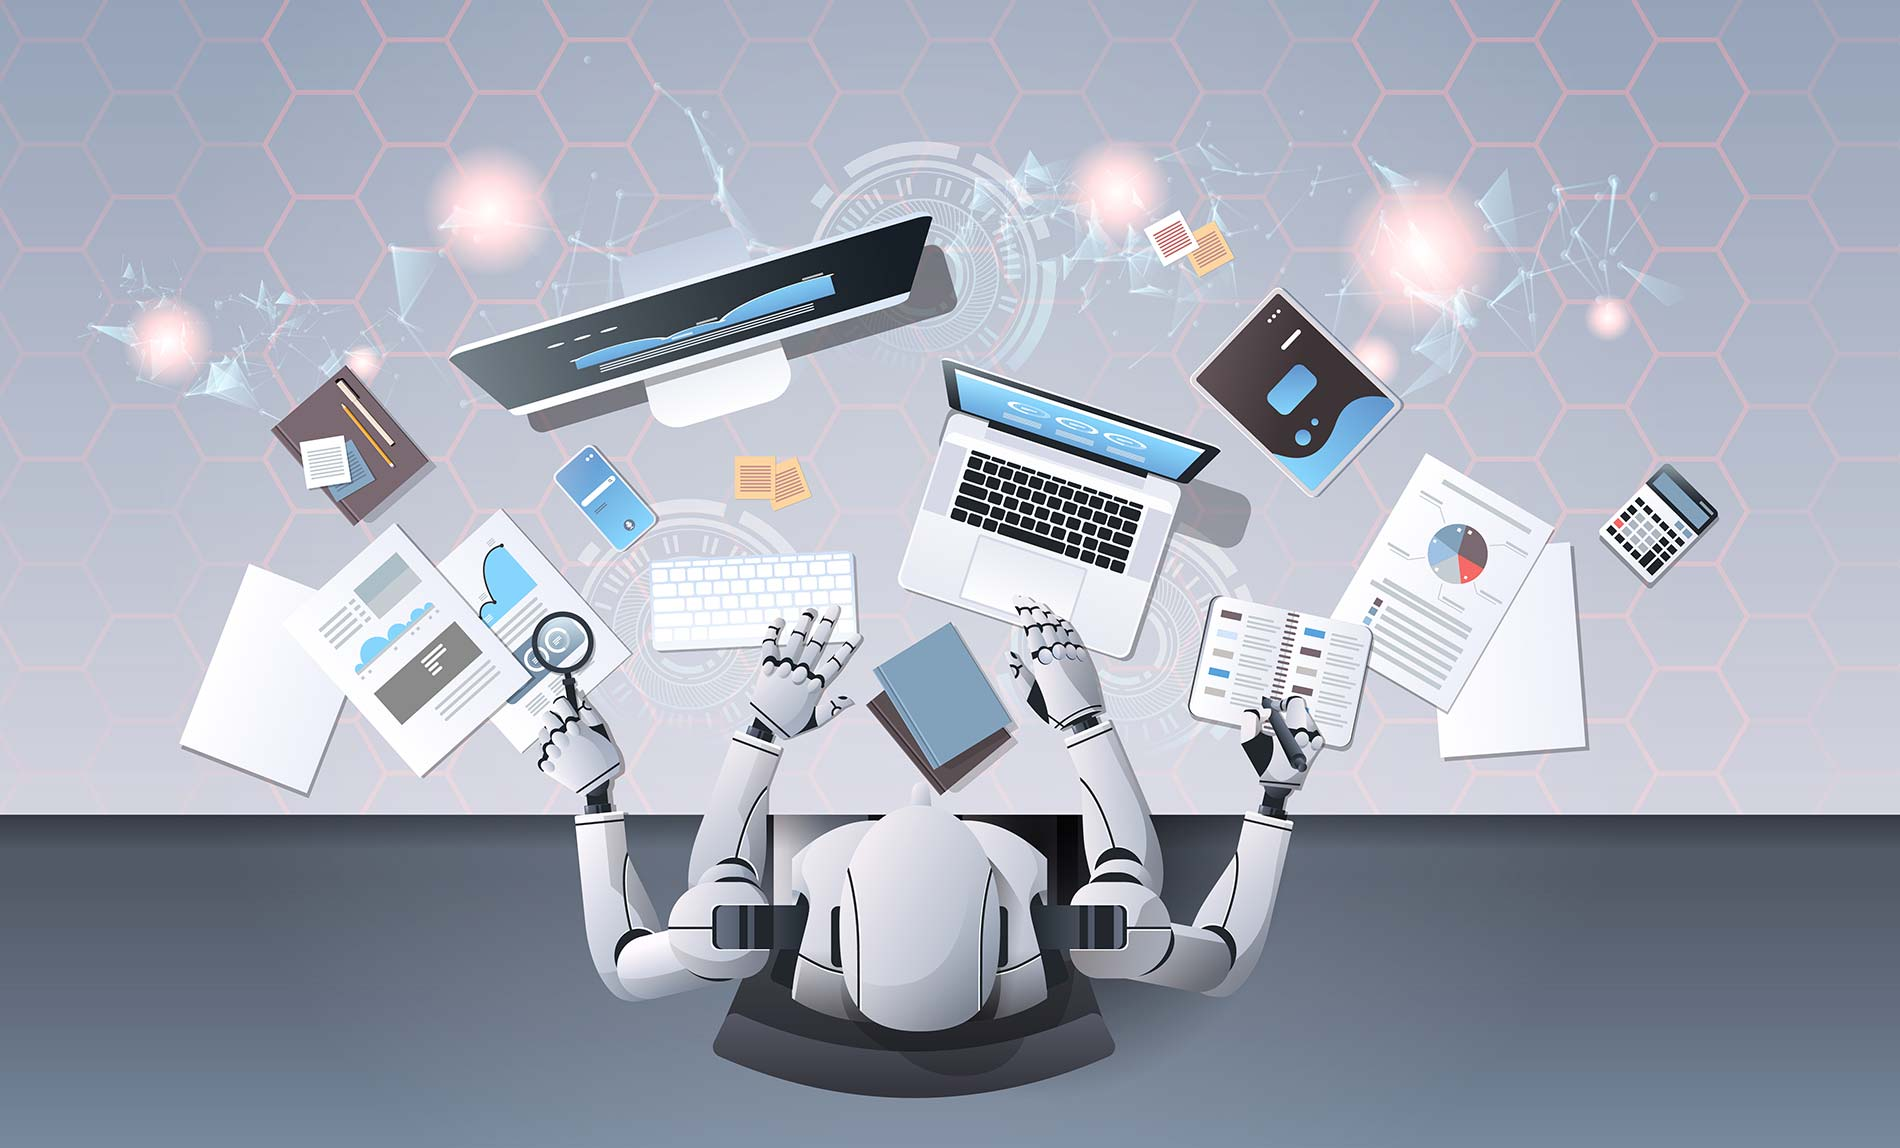 Robot with many hands using digital devices at workplace